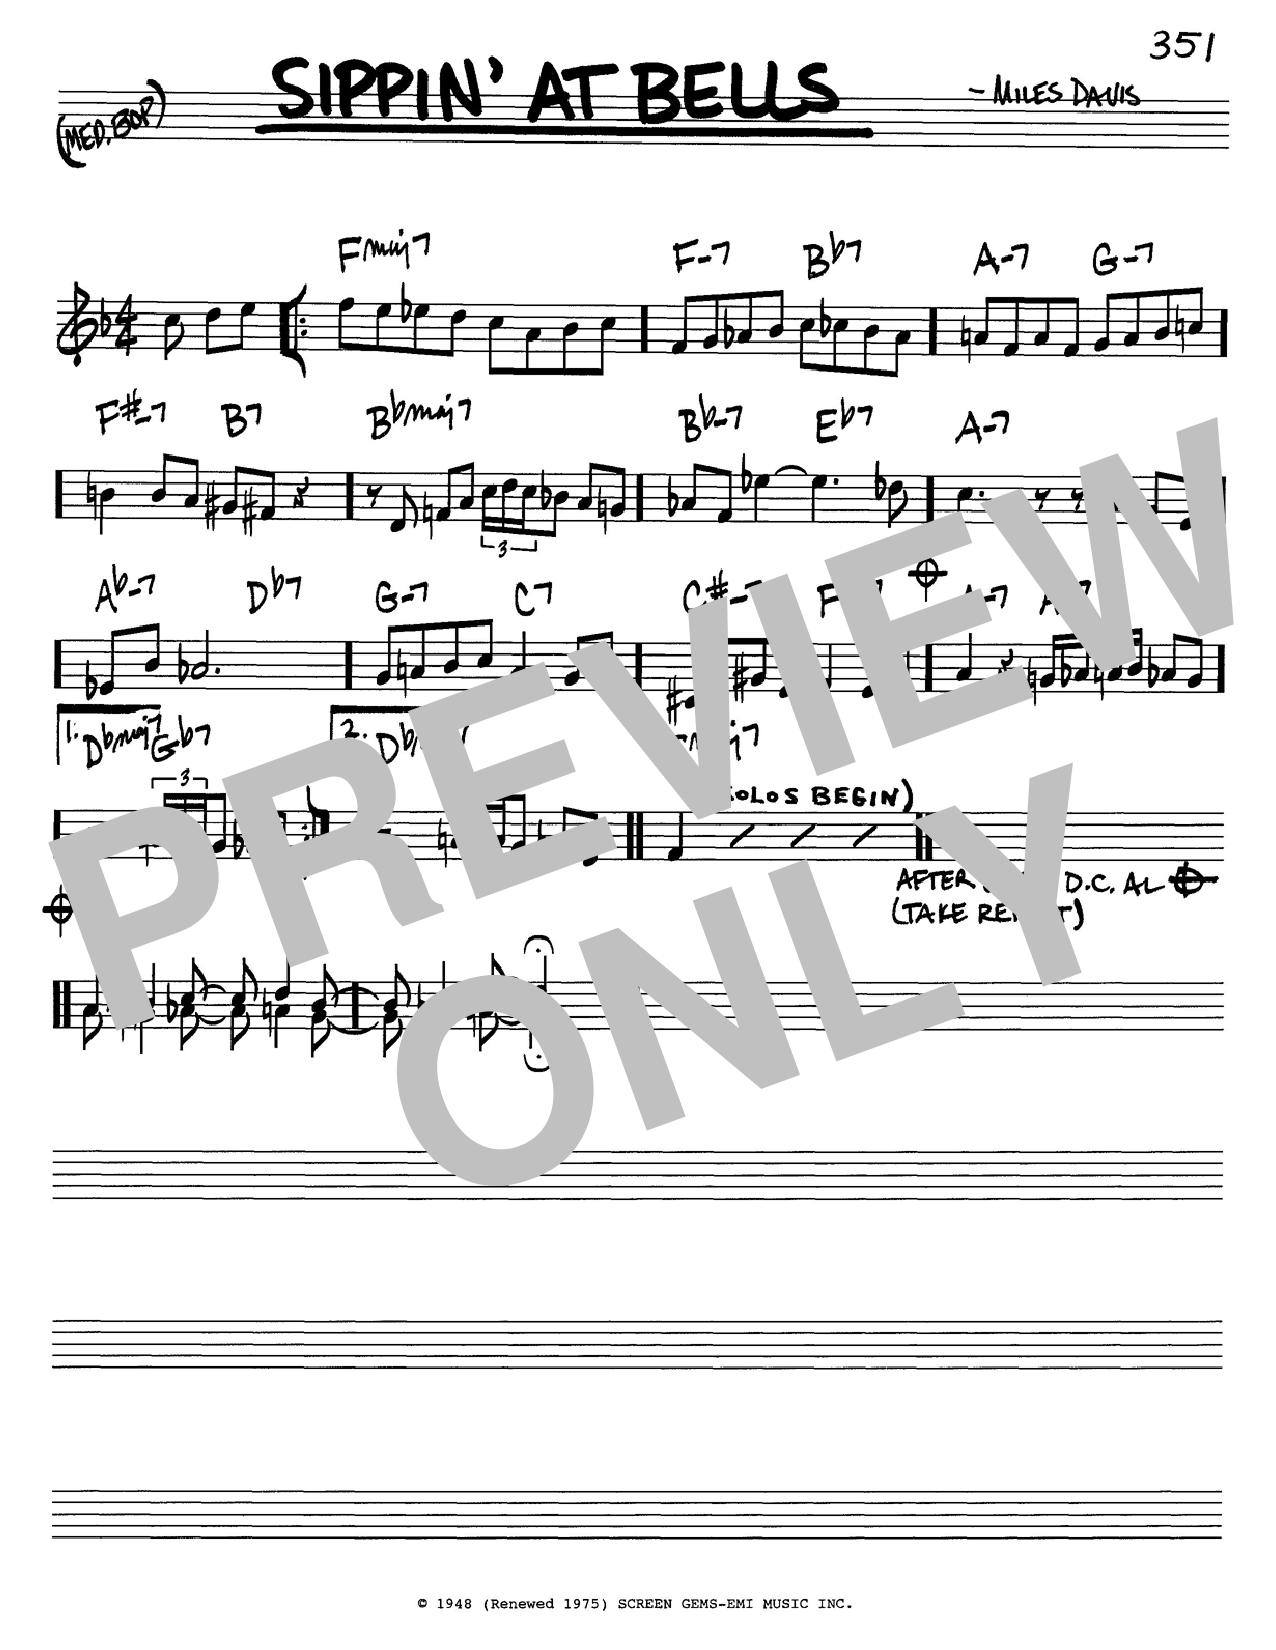 Miles Davis Sippin' At Bells sheet music notes and chords. Download Printable PDF.